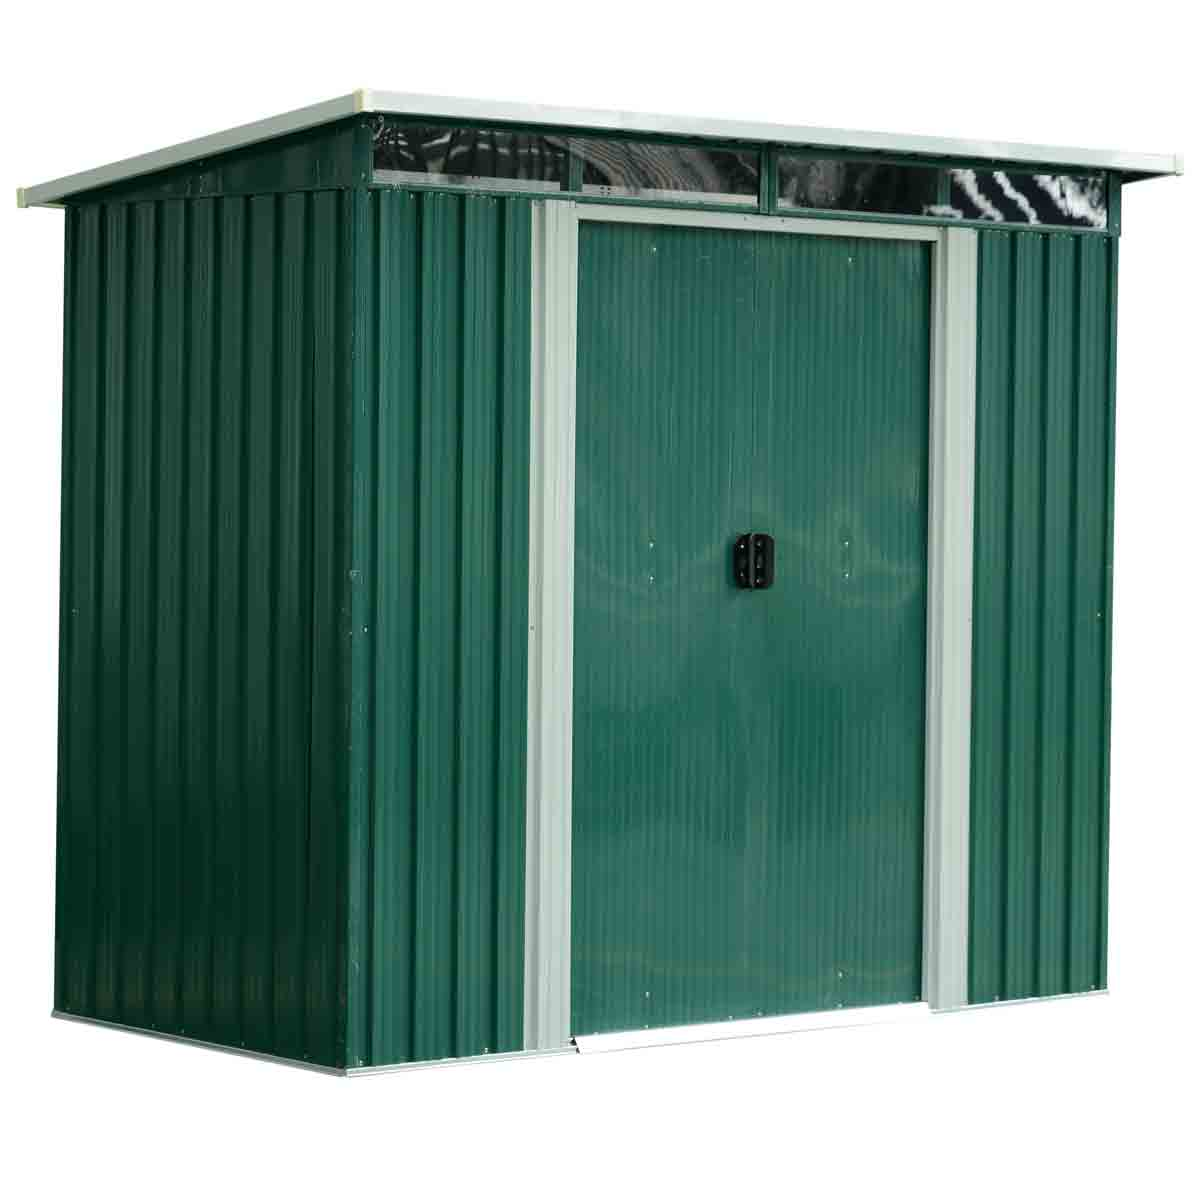 Outsunny 8' x 6' Metal Heavy Duty Pent Storage Shed - Green